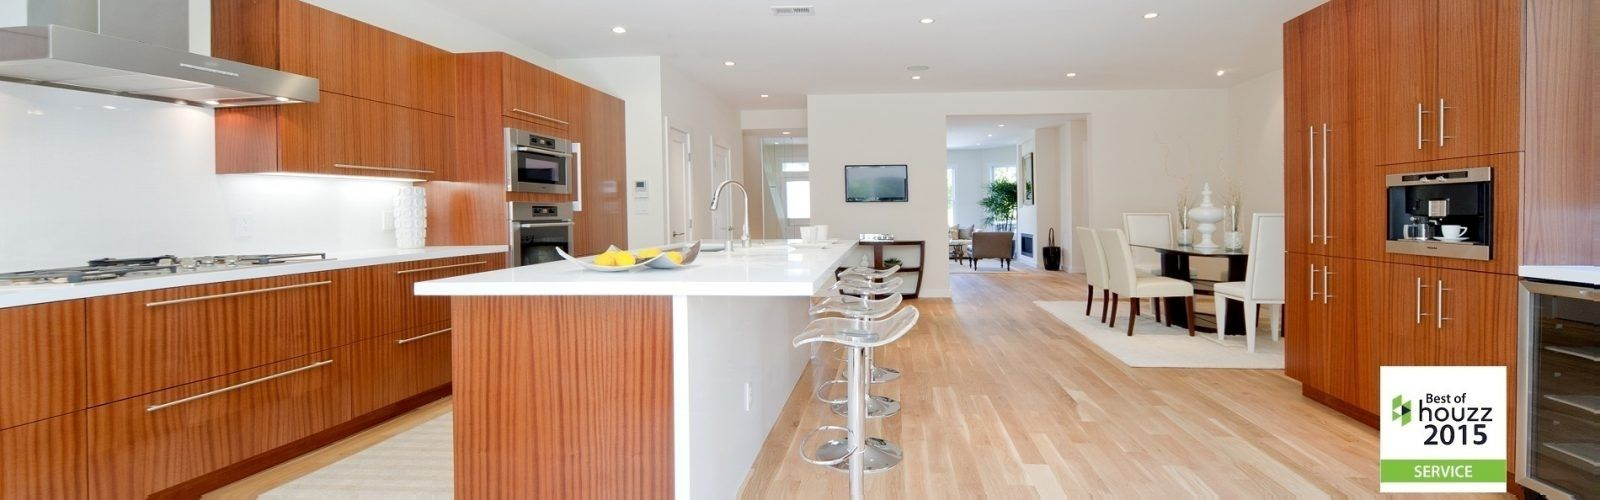 Kitchen Cabinet Refacing San Mateo | http://garecscleaningsystems ...